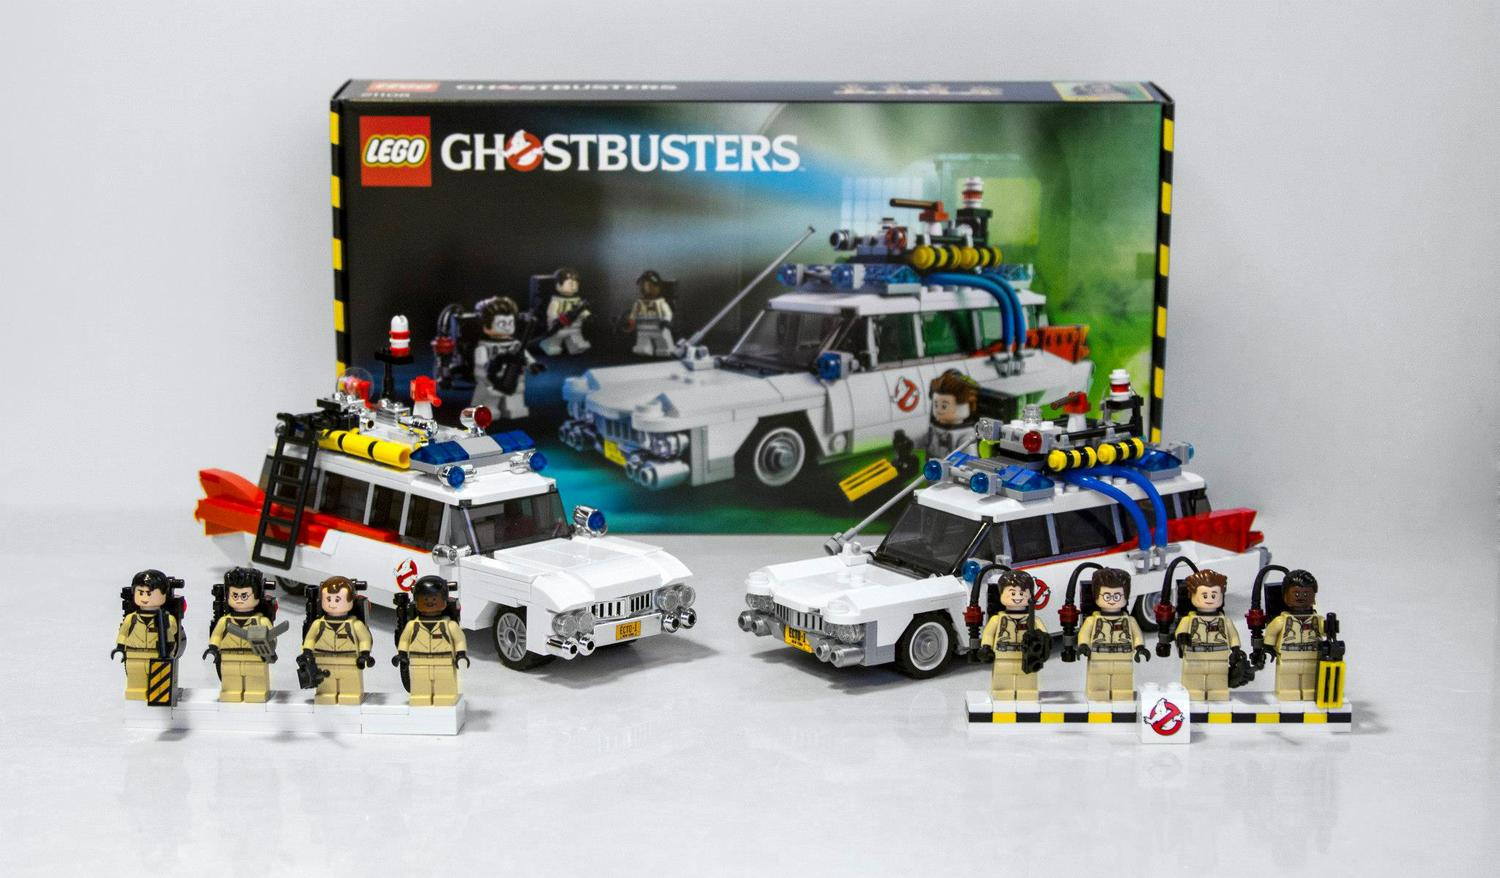 the-official-ghostbusters-ecto-1-lego-play-set-revealed